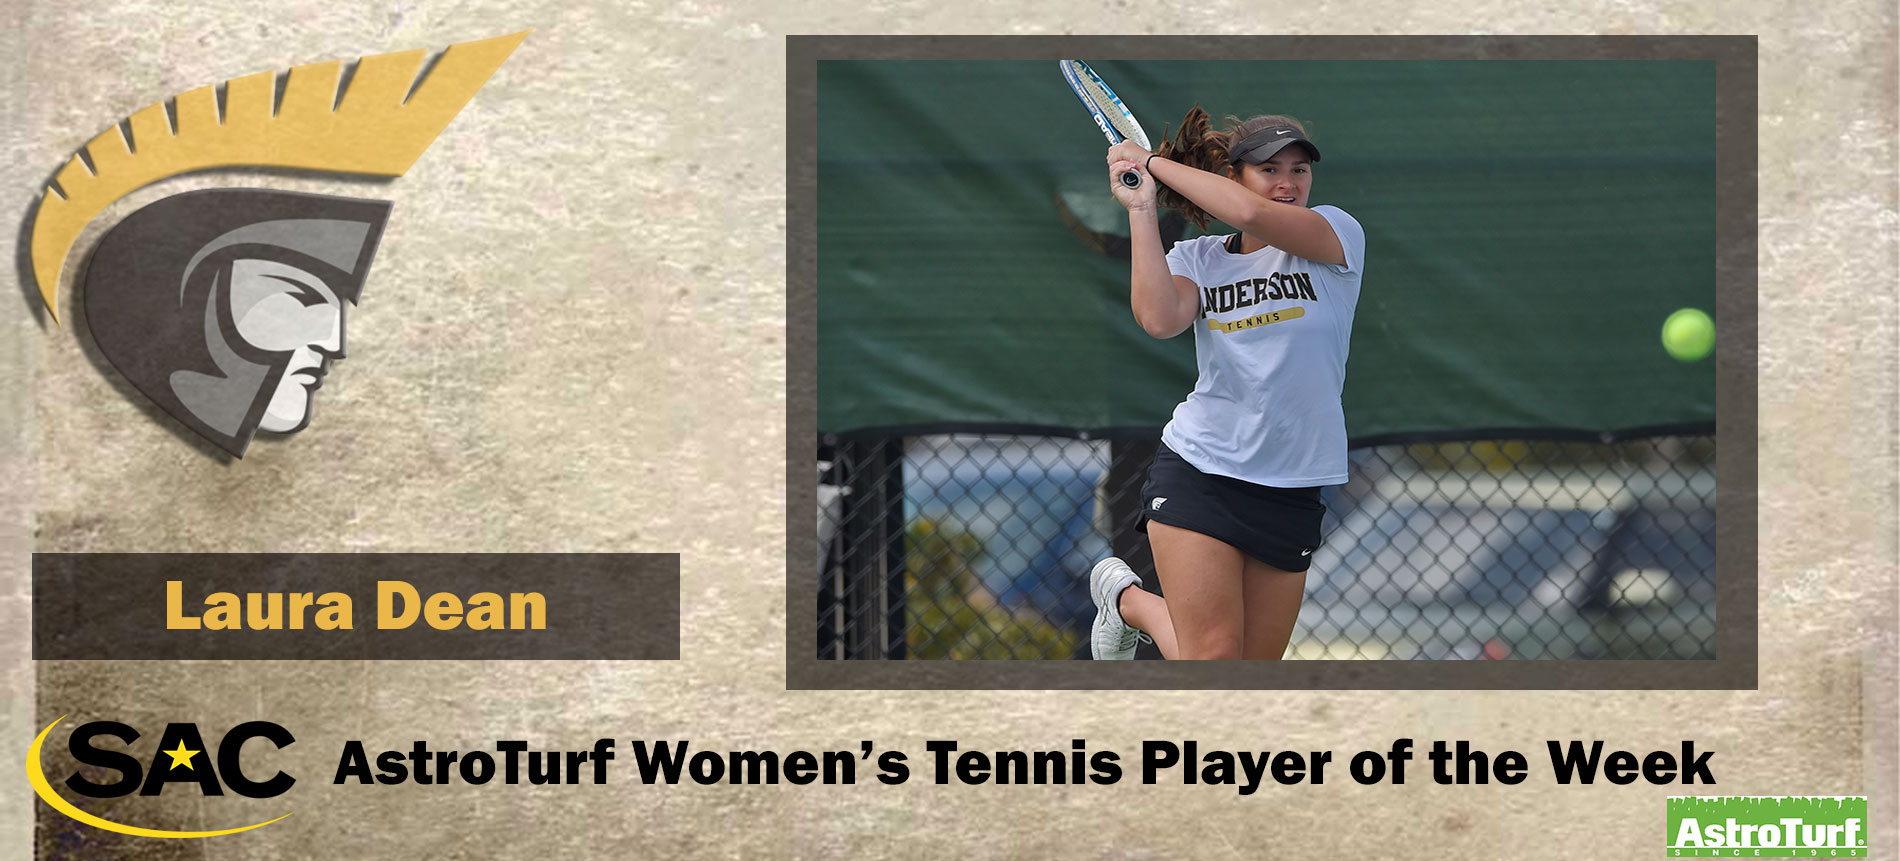 Dean Earns South Atlantic Conference AstroTurf Women's Tennis Player of the Week